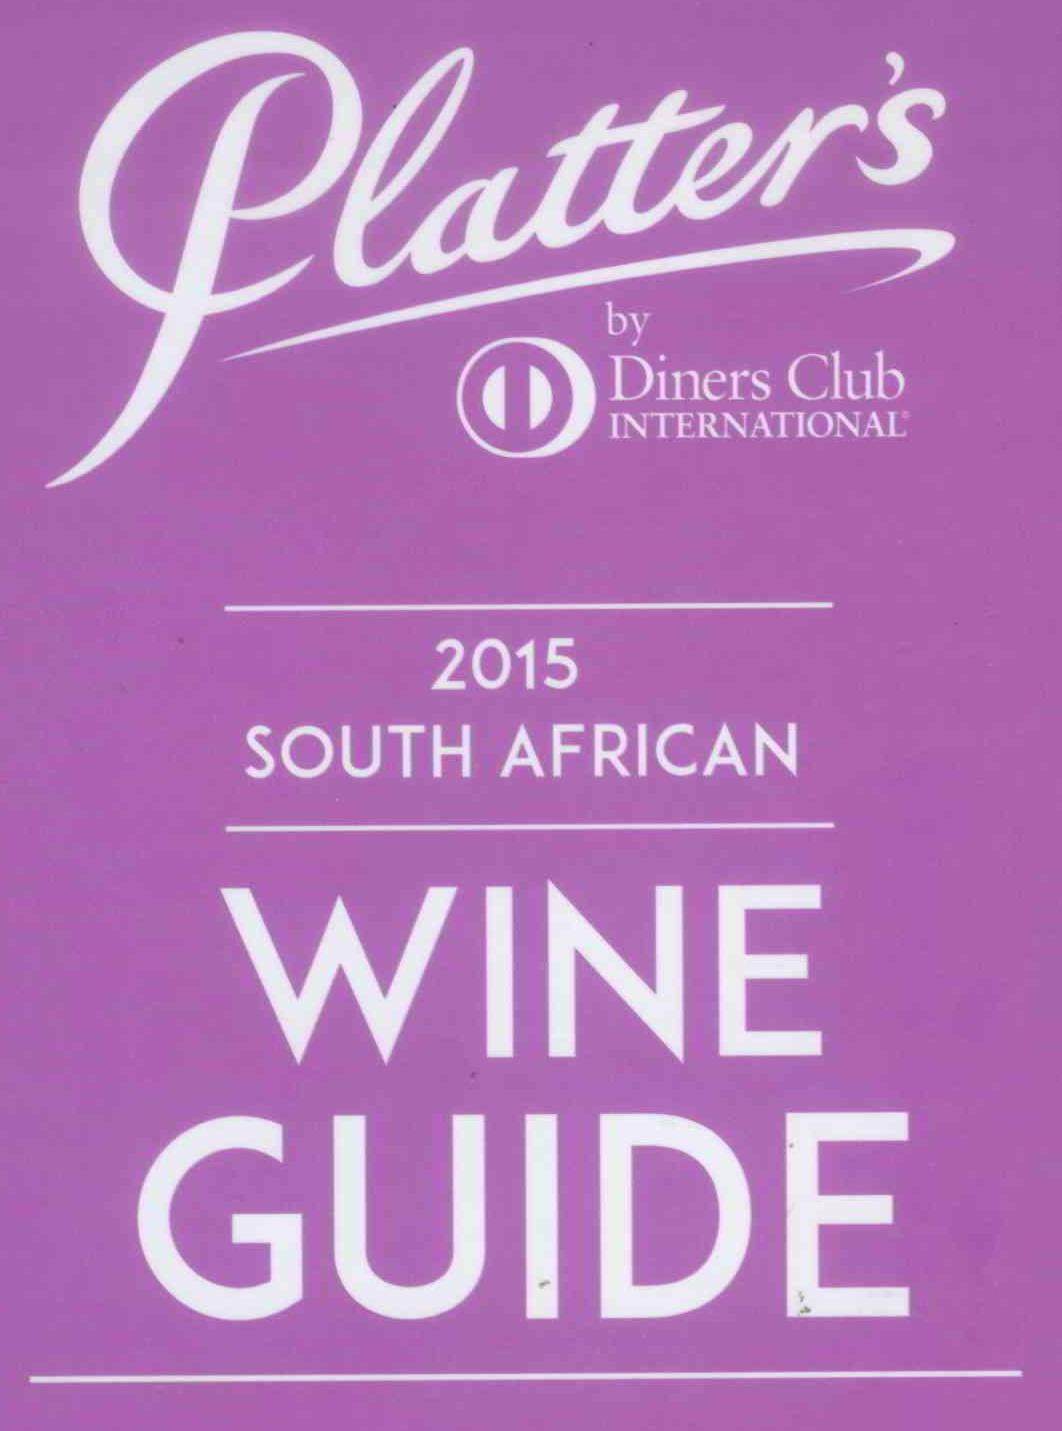 John Platter 2015 South Africa Wine Book recommends Percy Tours as the ONLY Wine Tour Guide of the Hermanus wine region, South Africa